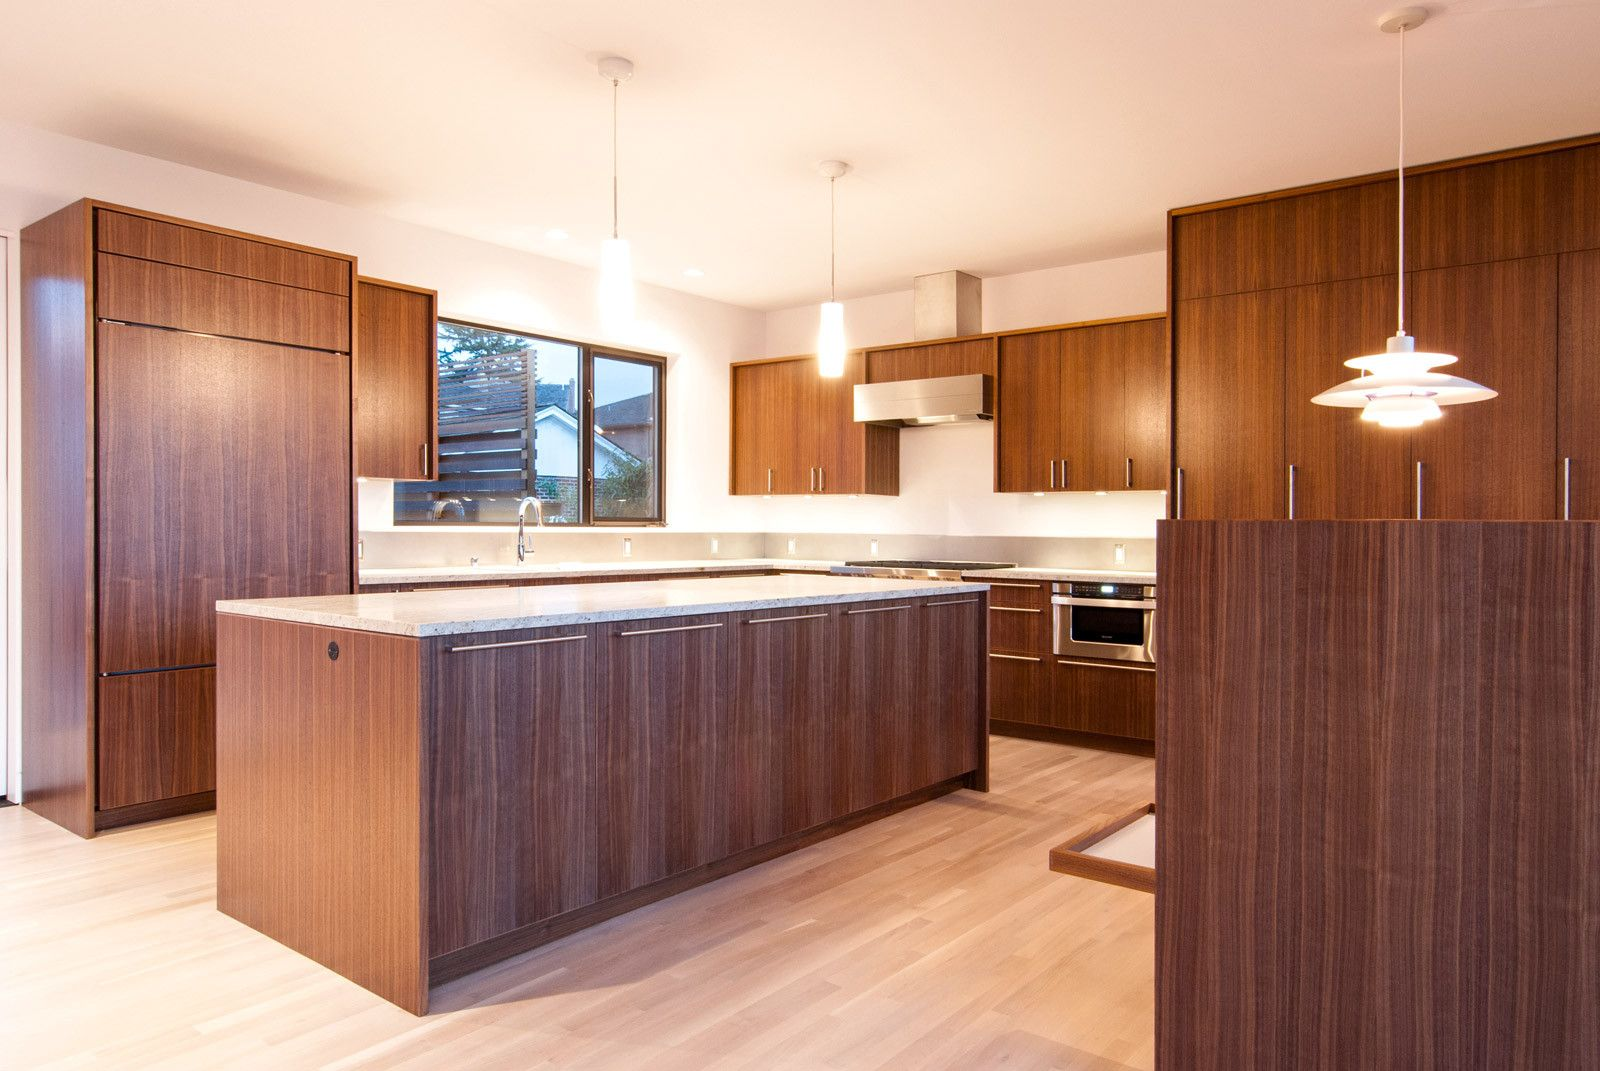 55 Walnut Veneer Kitchen Cabinets Kitchen Island Countertop Ideas Check More At Http Inexpensive Kitchen Remodel Quartzite Countertops Kitchen Countertops